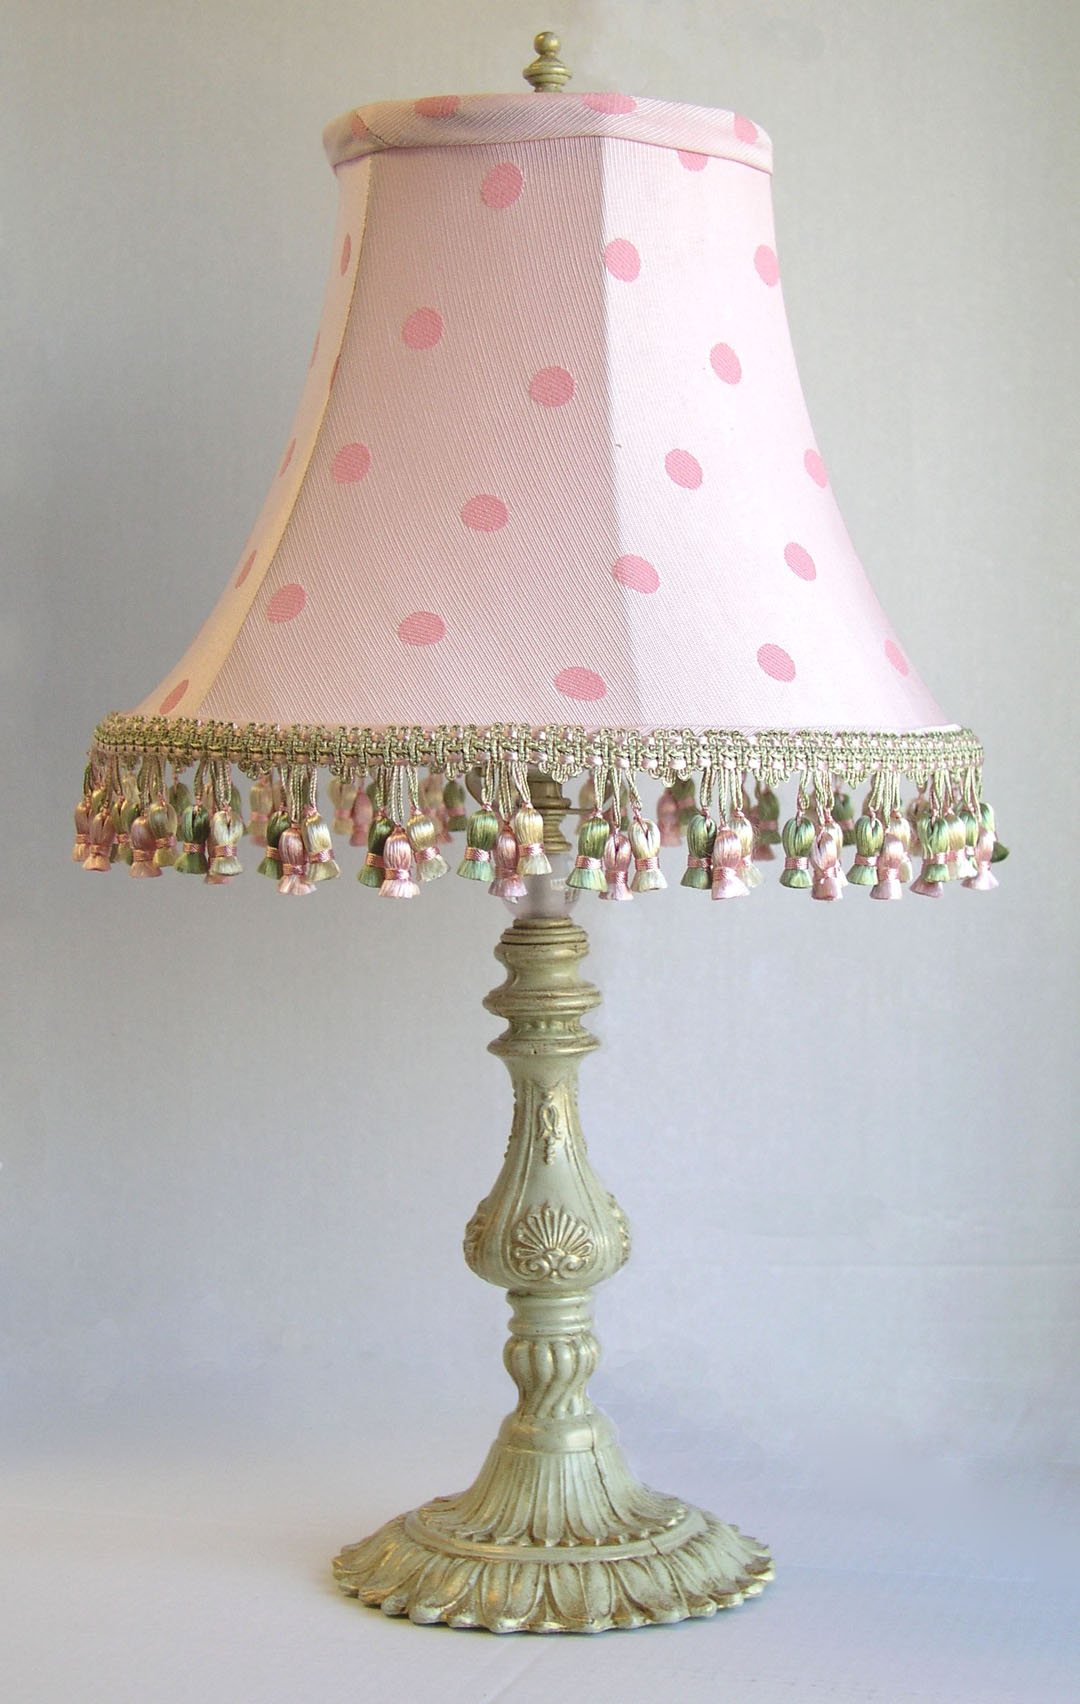 vintage shabby chic lighting. ls104 ajpg 253663 bytes vintage shabby chic lighting i lite 4 u